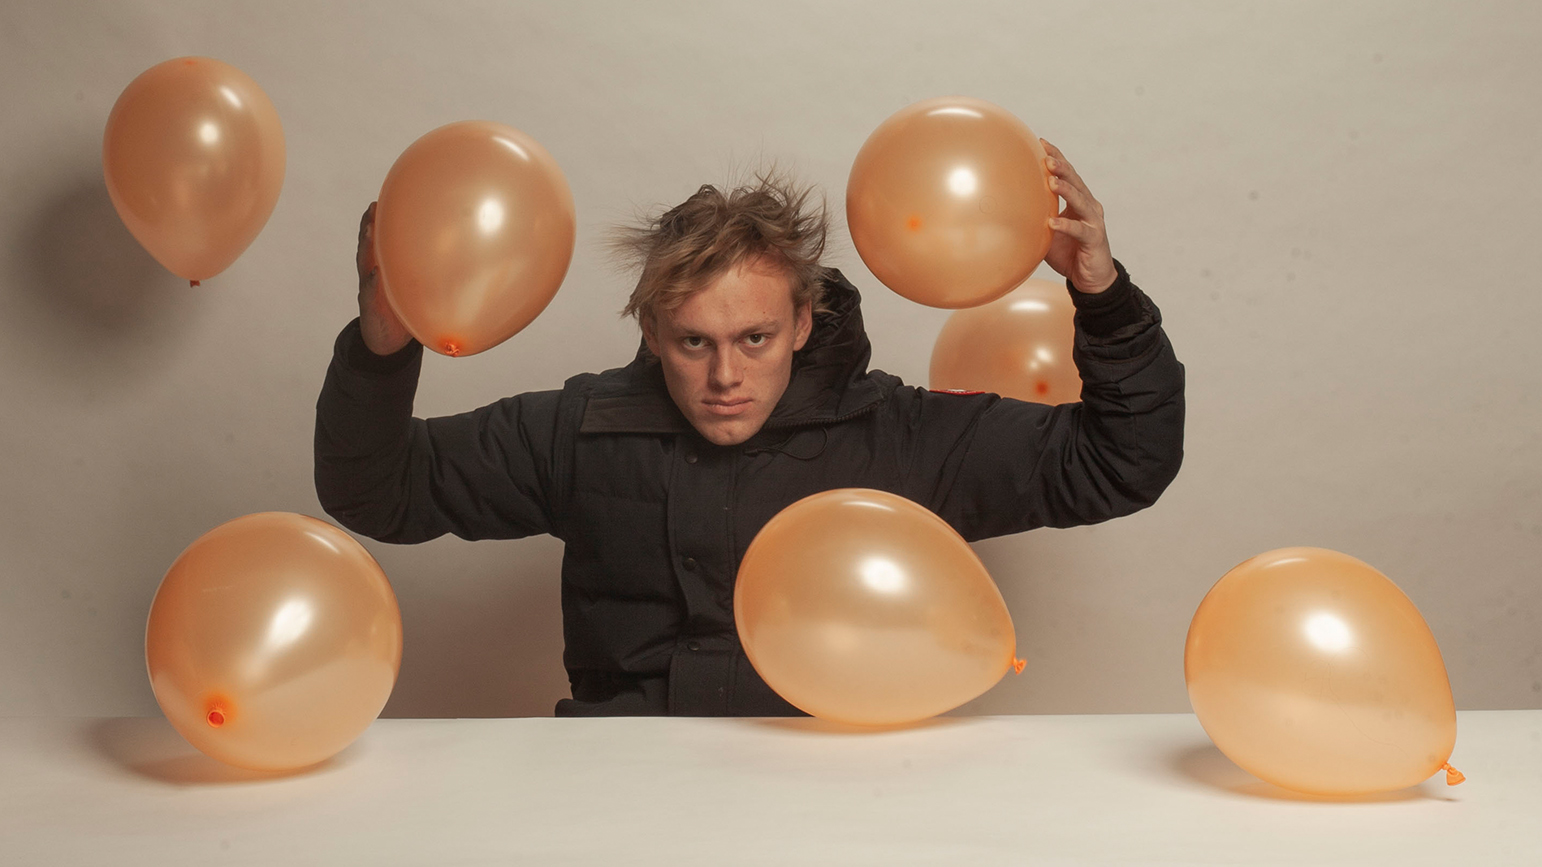 Photograph of Jackson Bridgers surrounded by balloons